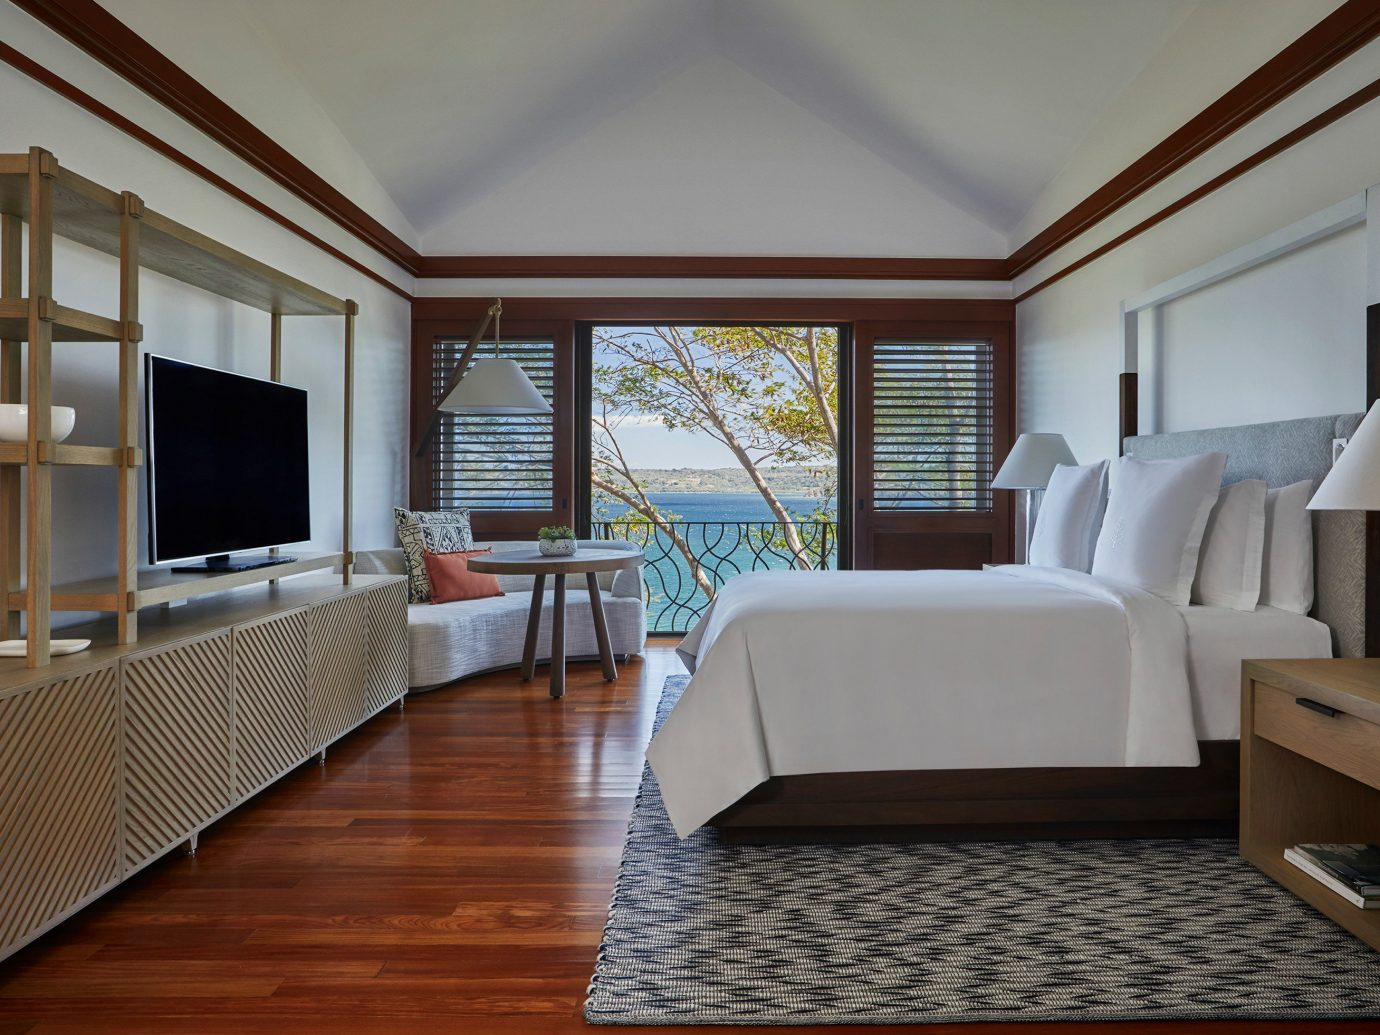 Bedroom at the Four Seasons Costa Rica